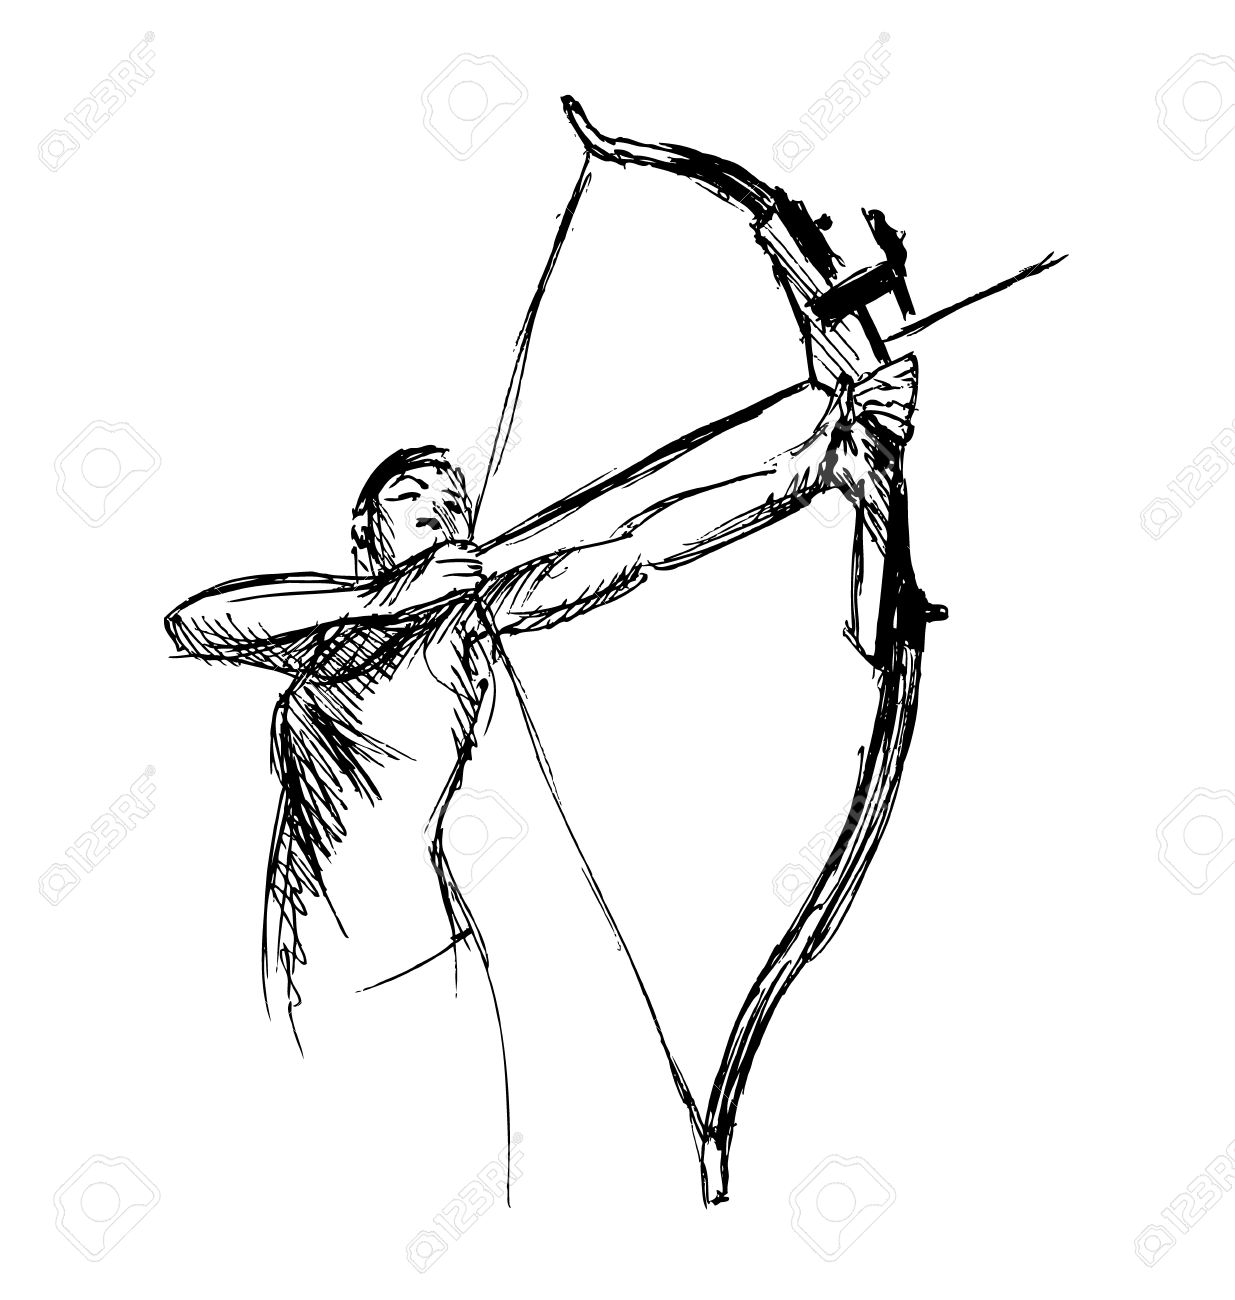 Drawing at getdrawings com. Archery clipart sketch